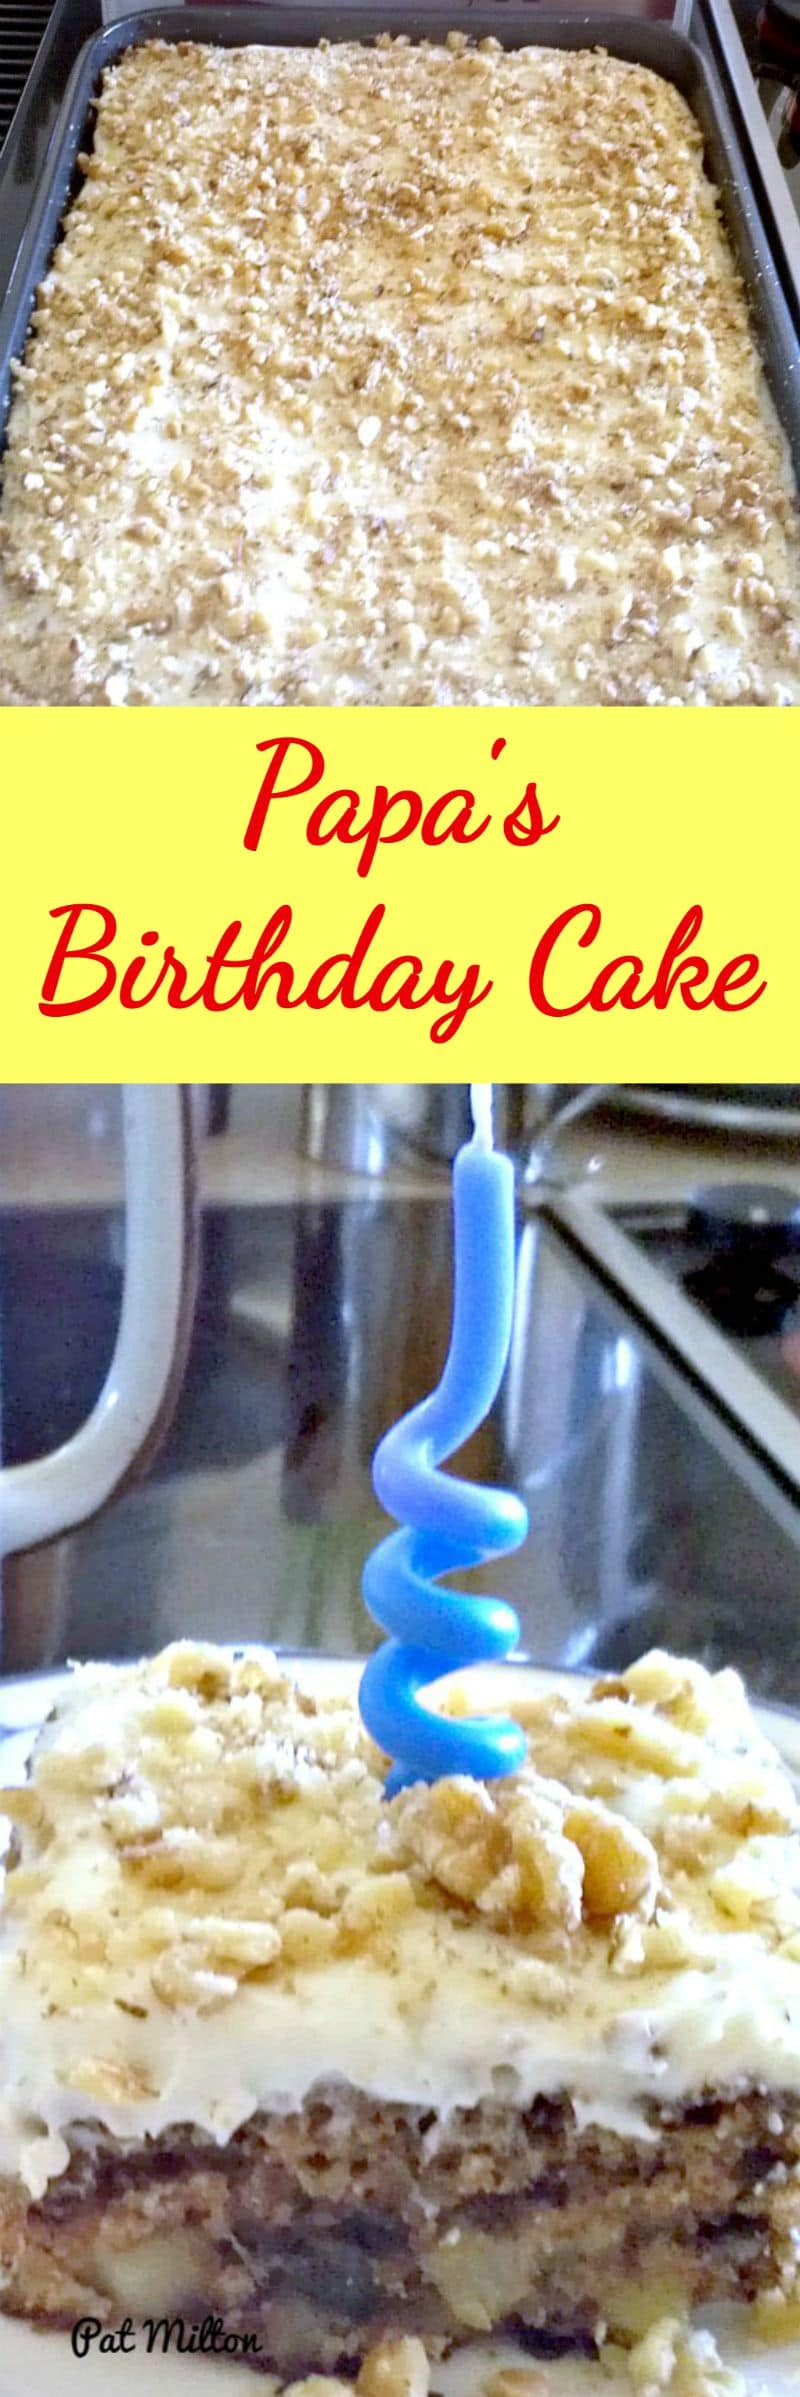 Papa's Birthday Cake is a lovely sheet style cake with pineapple and nuts. There's also a really easy cream cheese frosting for the top of the cake. Perfect for a party!